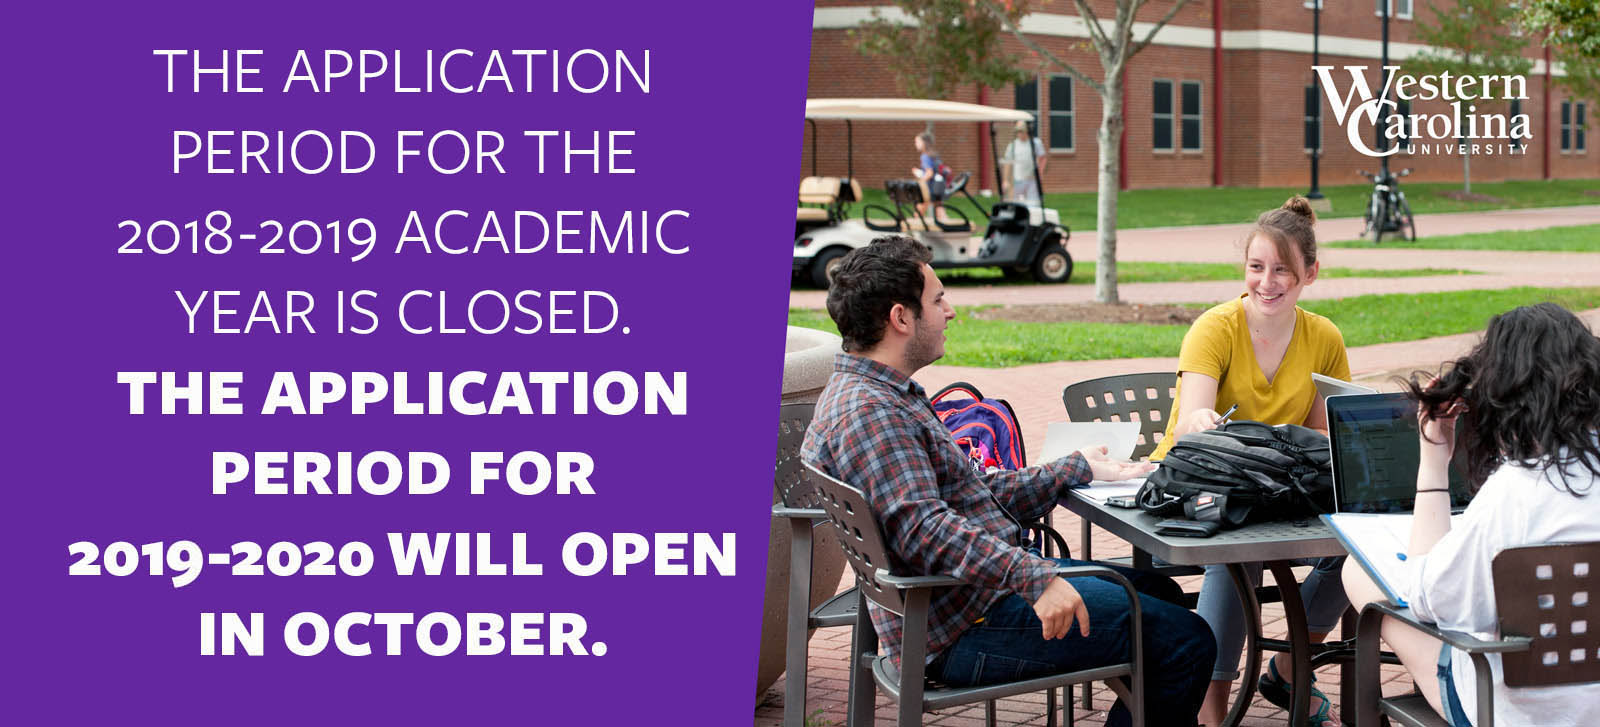 The application period for the 2018-2019 acadmeic year is closed. The application period for 2019-2020 will open in october.